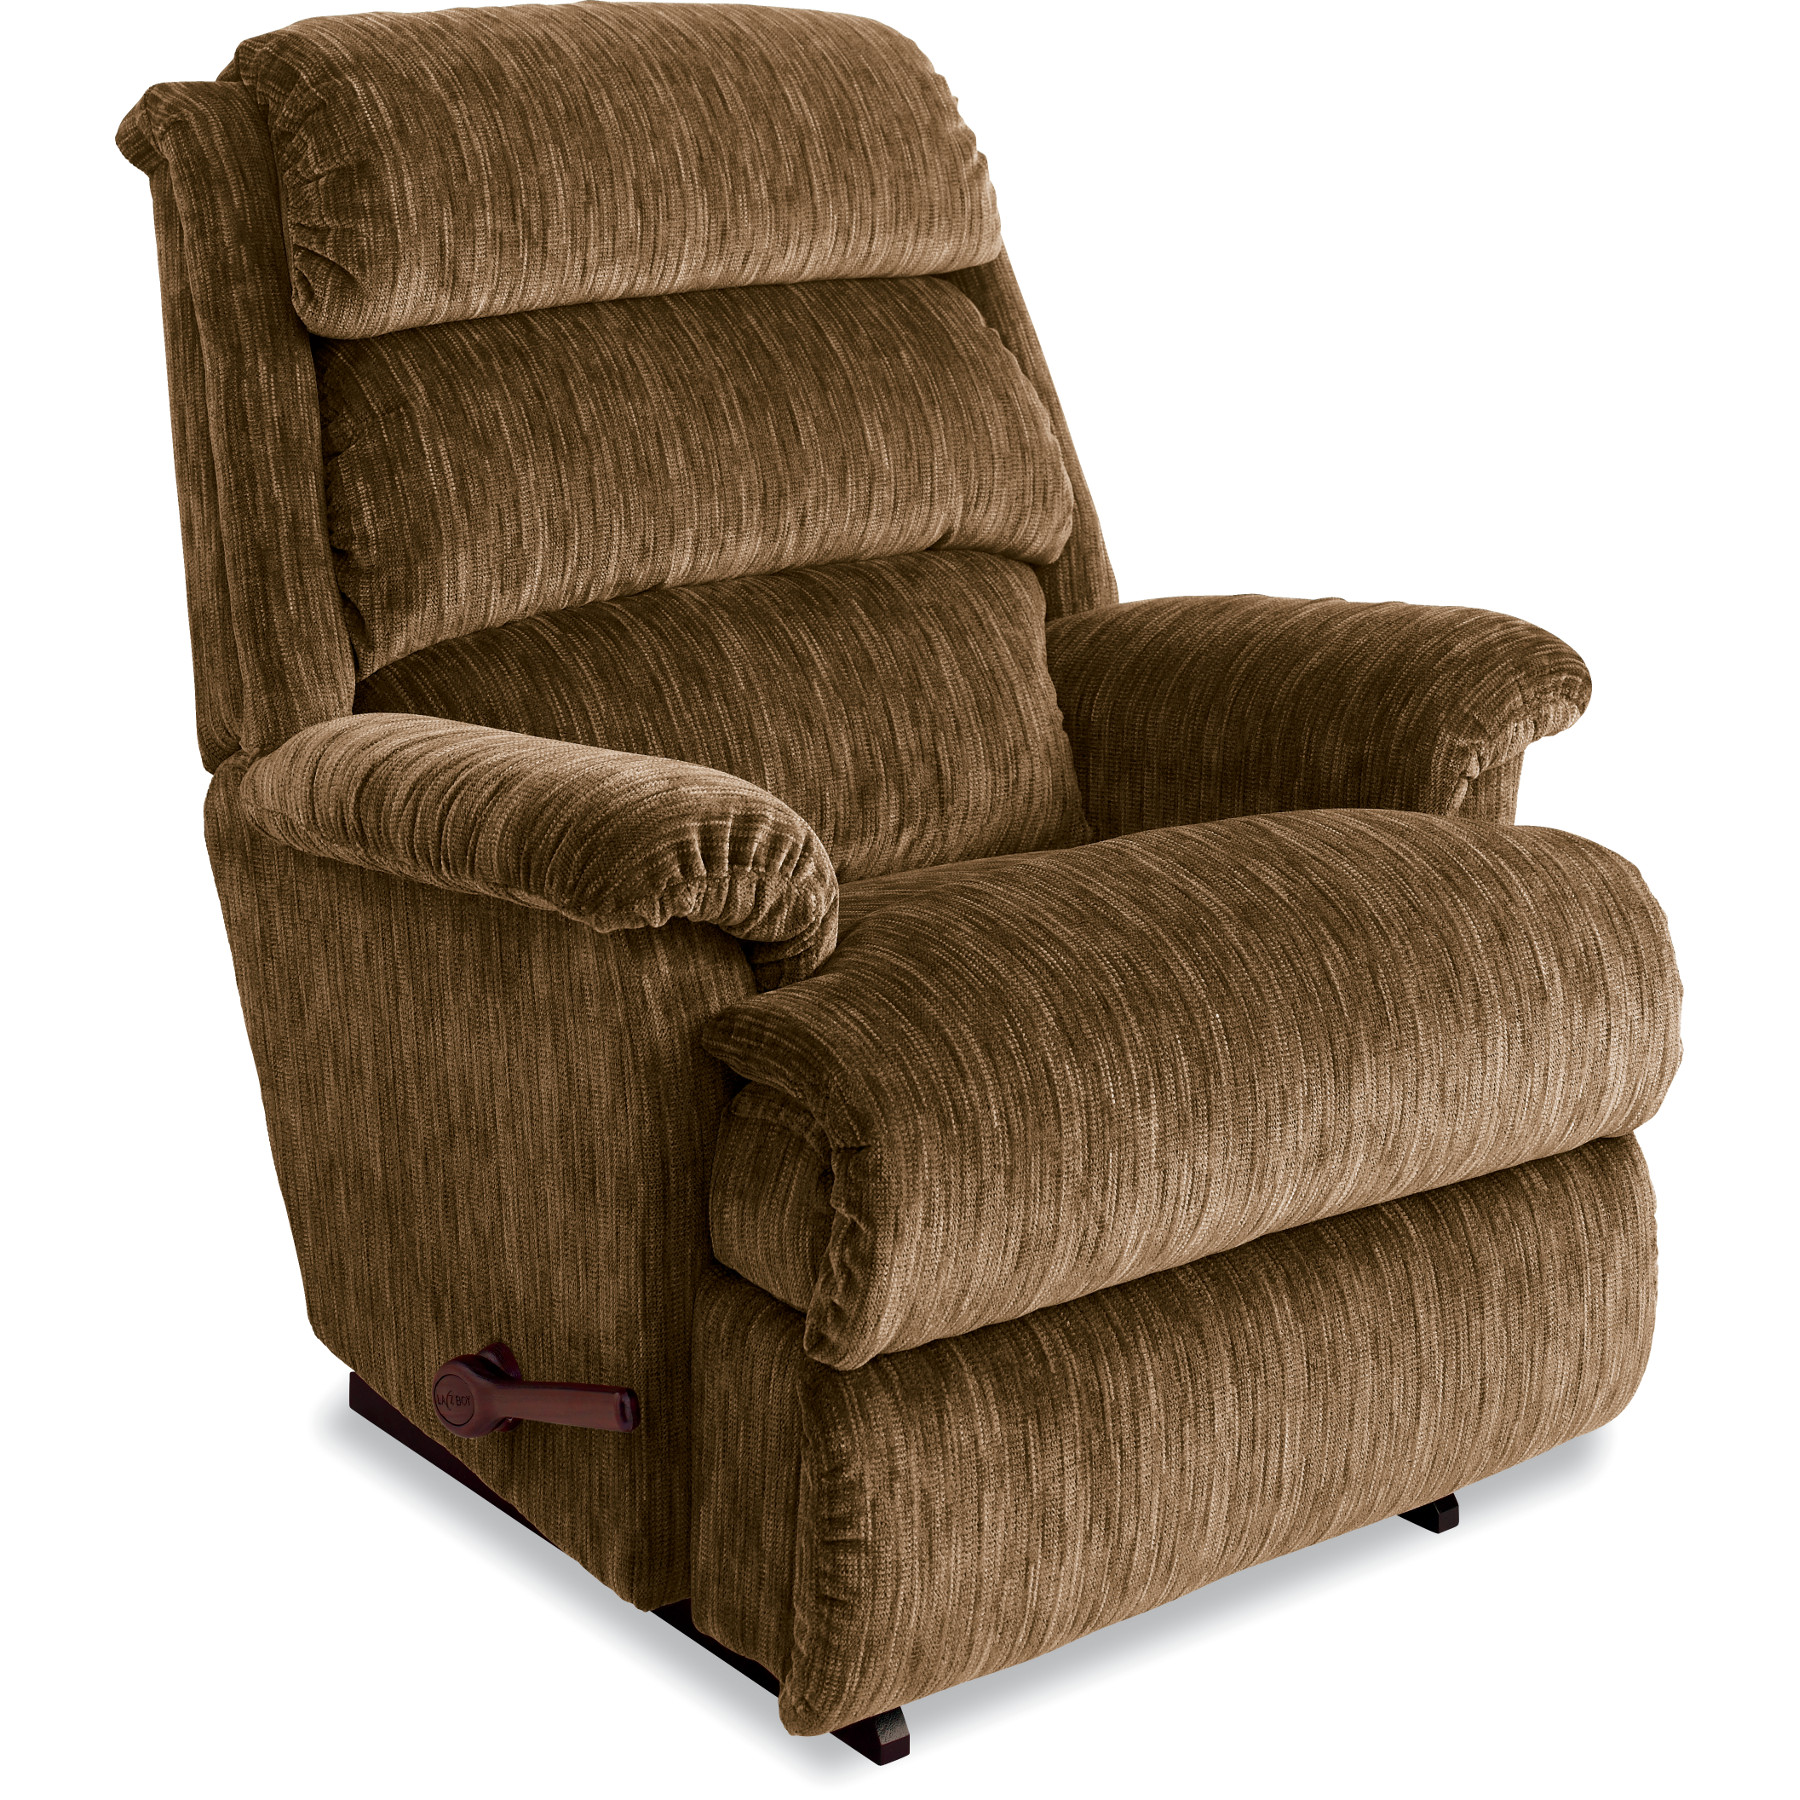 La-Z-Boy Aston Reclina-Rocker--Brown  sc 1 st  Sears & Recliners | Recliner Chairs - Sears islam-shia.org